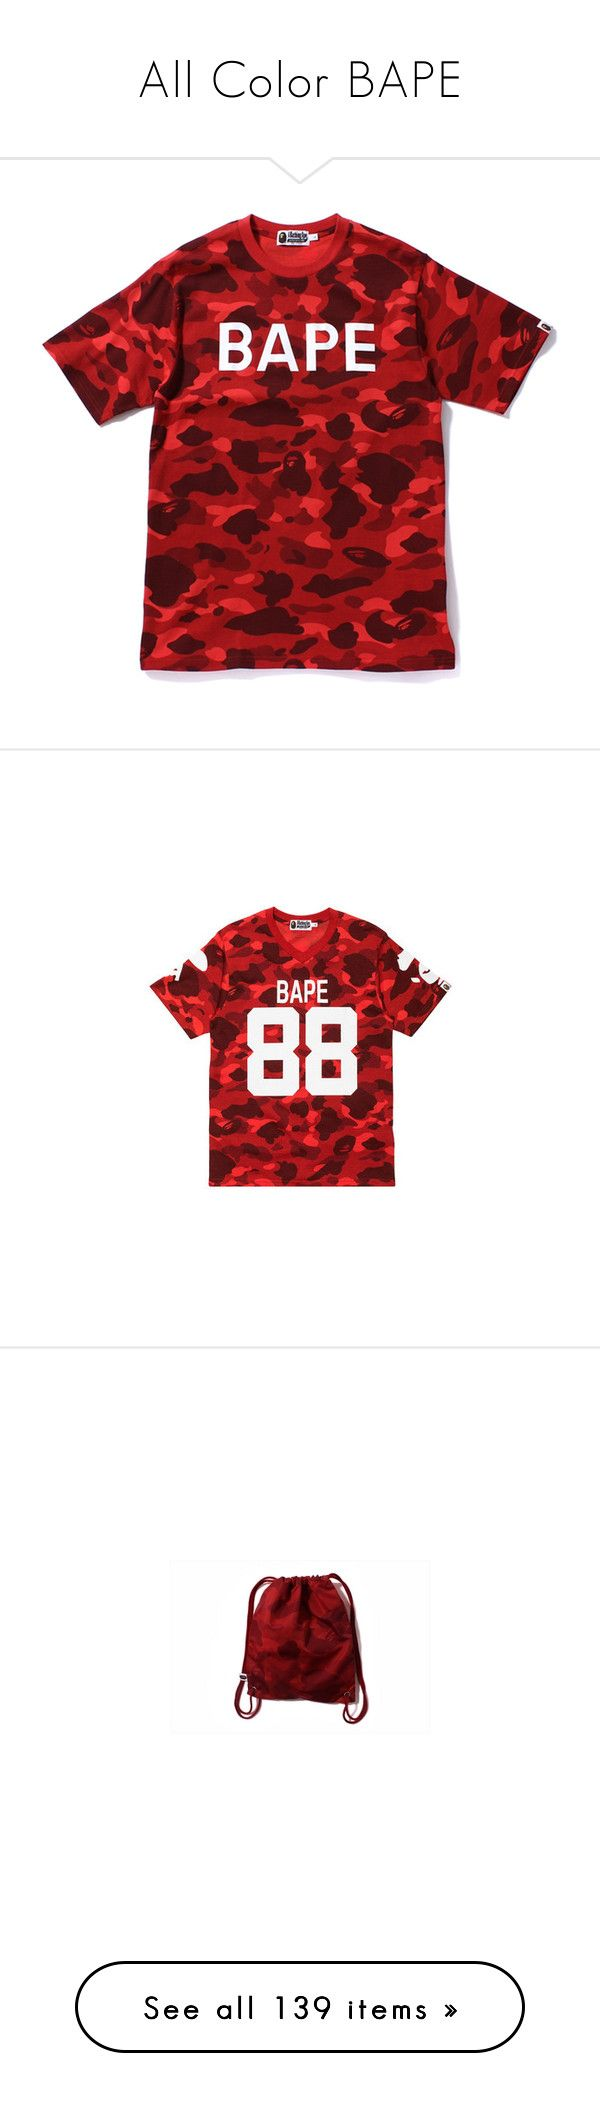 """""""All Color BAPE"""" by xxxfasiontrendsxxx on Polyvore featuring tops, t-shirts, shirts, items, t shirt, camo t shirt, tee-shirt, red camo shirt, camoflauge shirt and camo tees"""